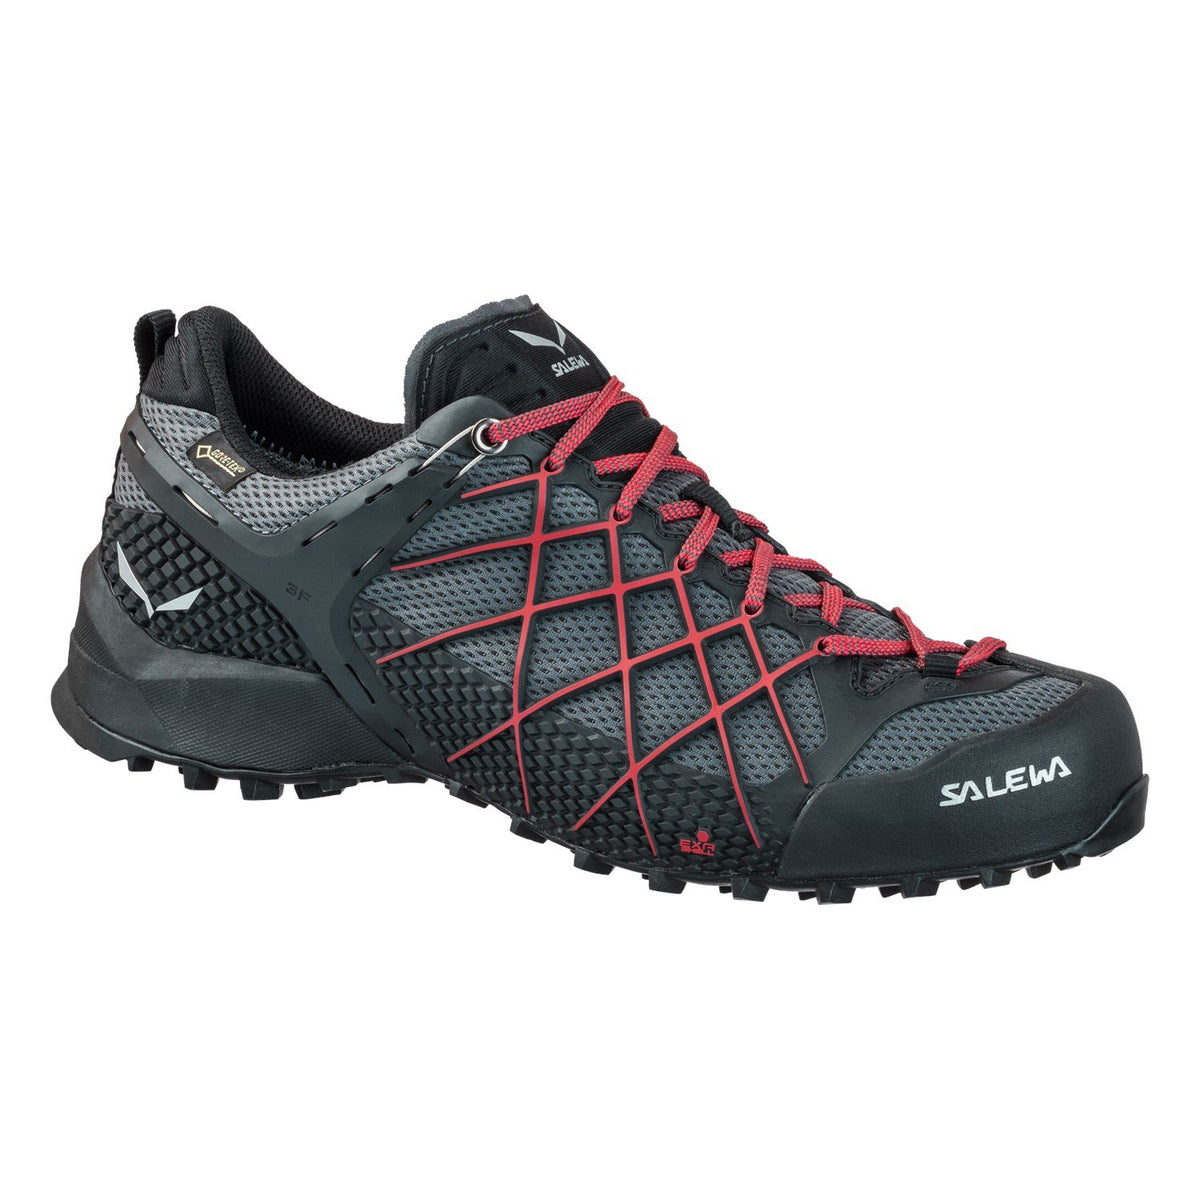 Salewa Wilfire GTX technical approach shoe in Black/red colours, outer side view.